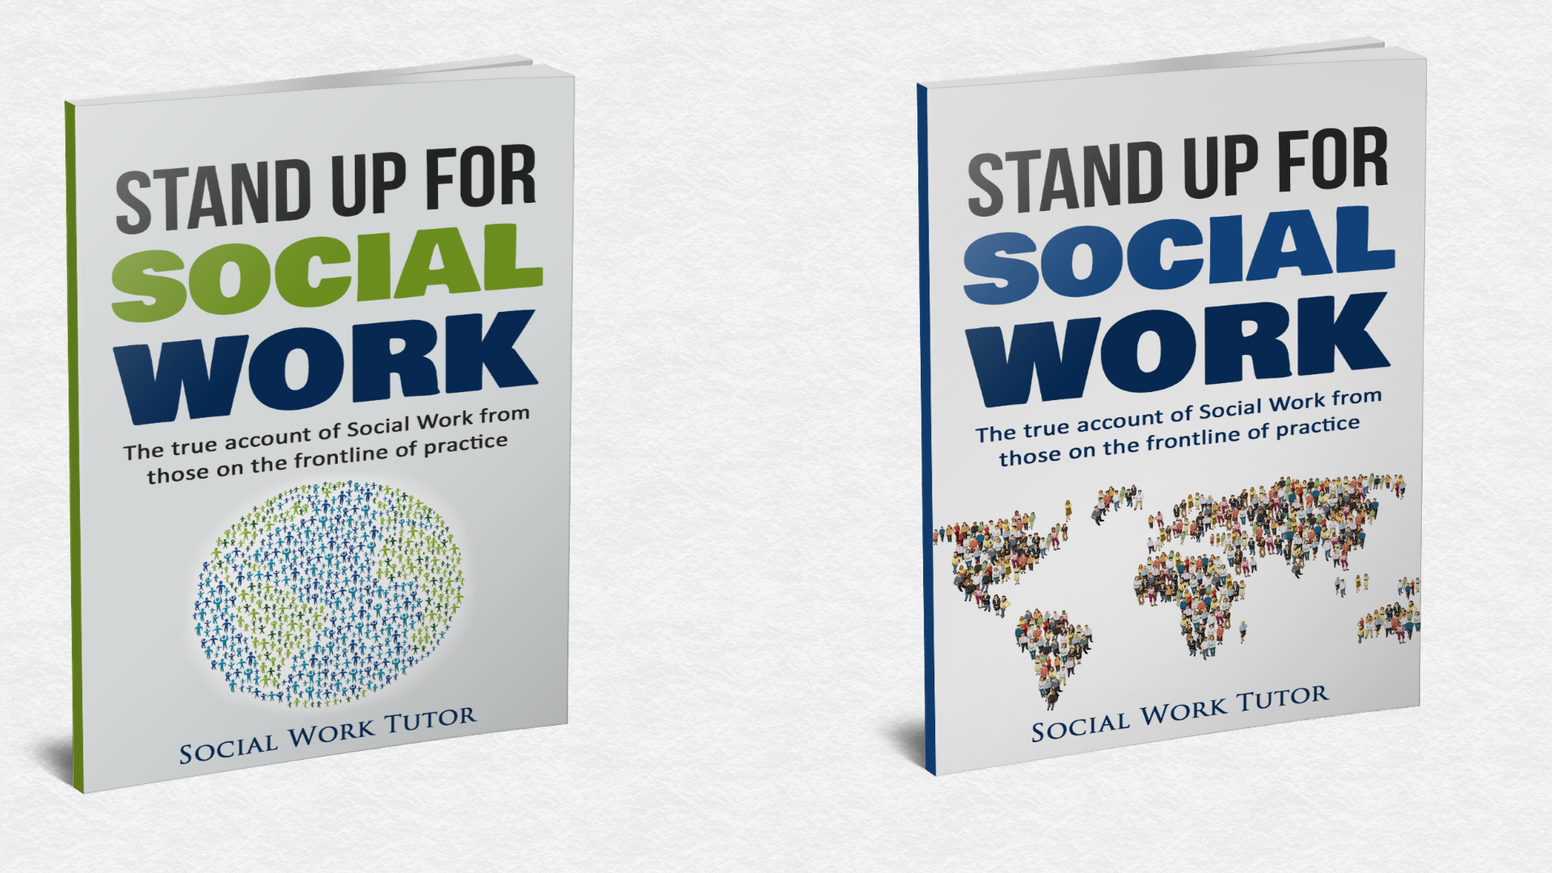 The book that will show the true account of Social Work from those on the frontline of practice all over the world.